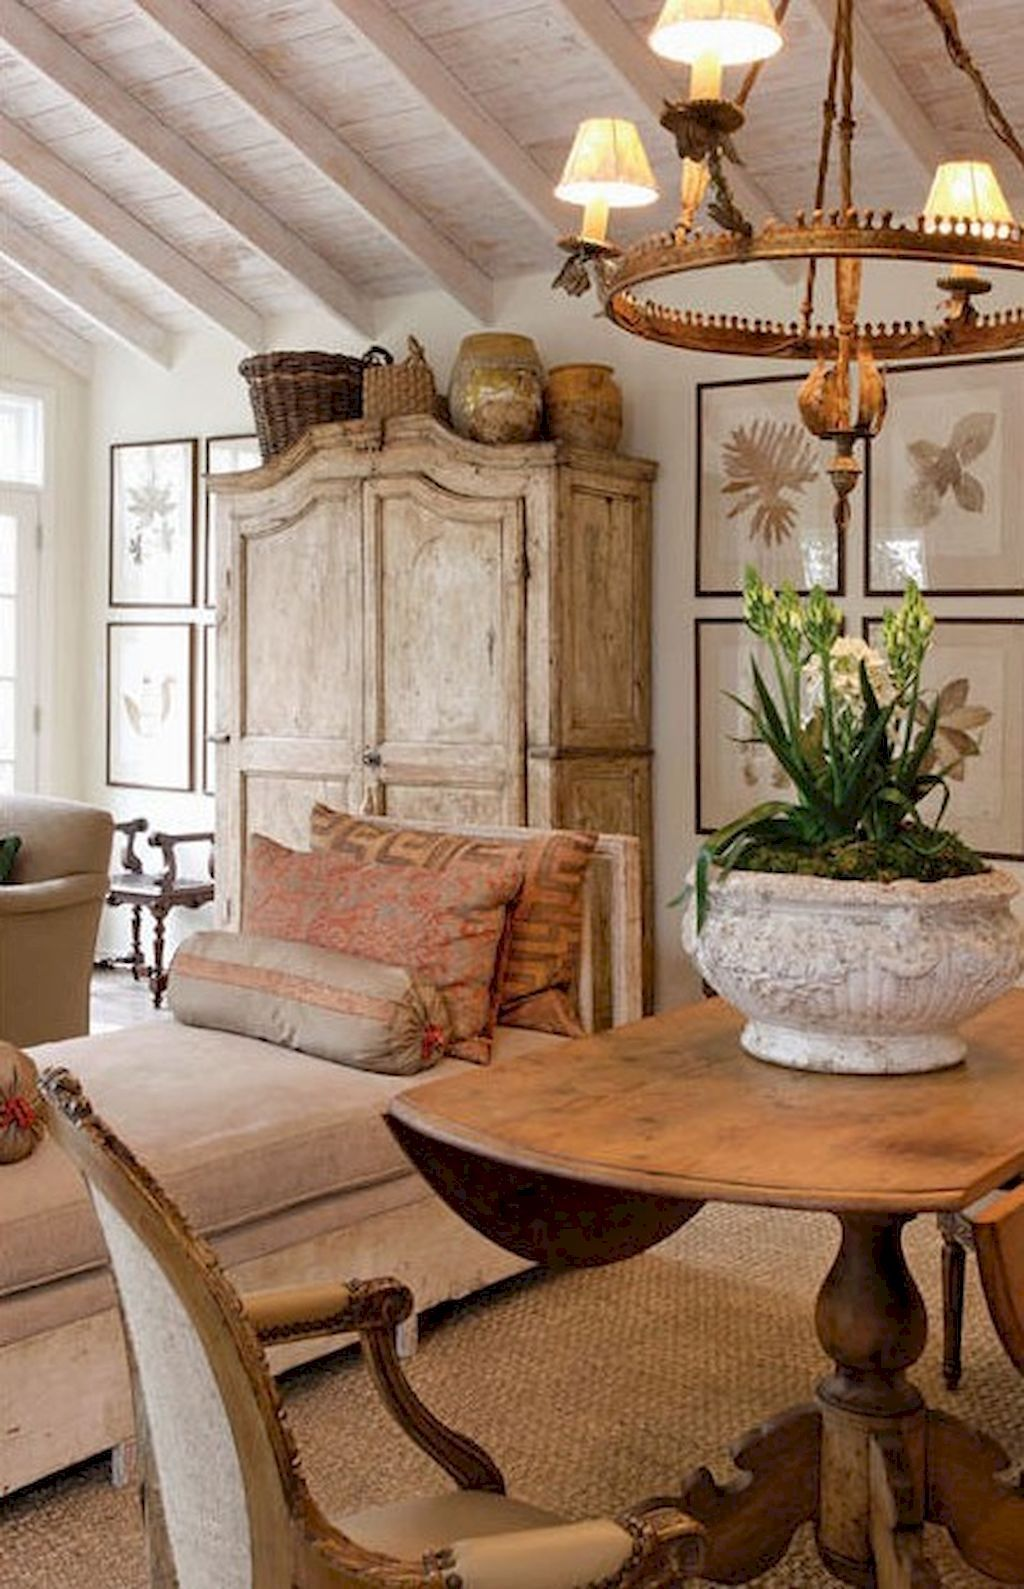 Awesome 65 Vintage French Country Dining Room Design Ideas Https Idecorgram